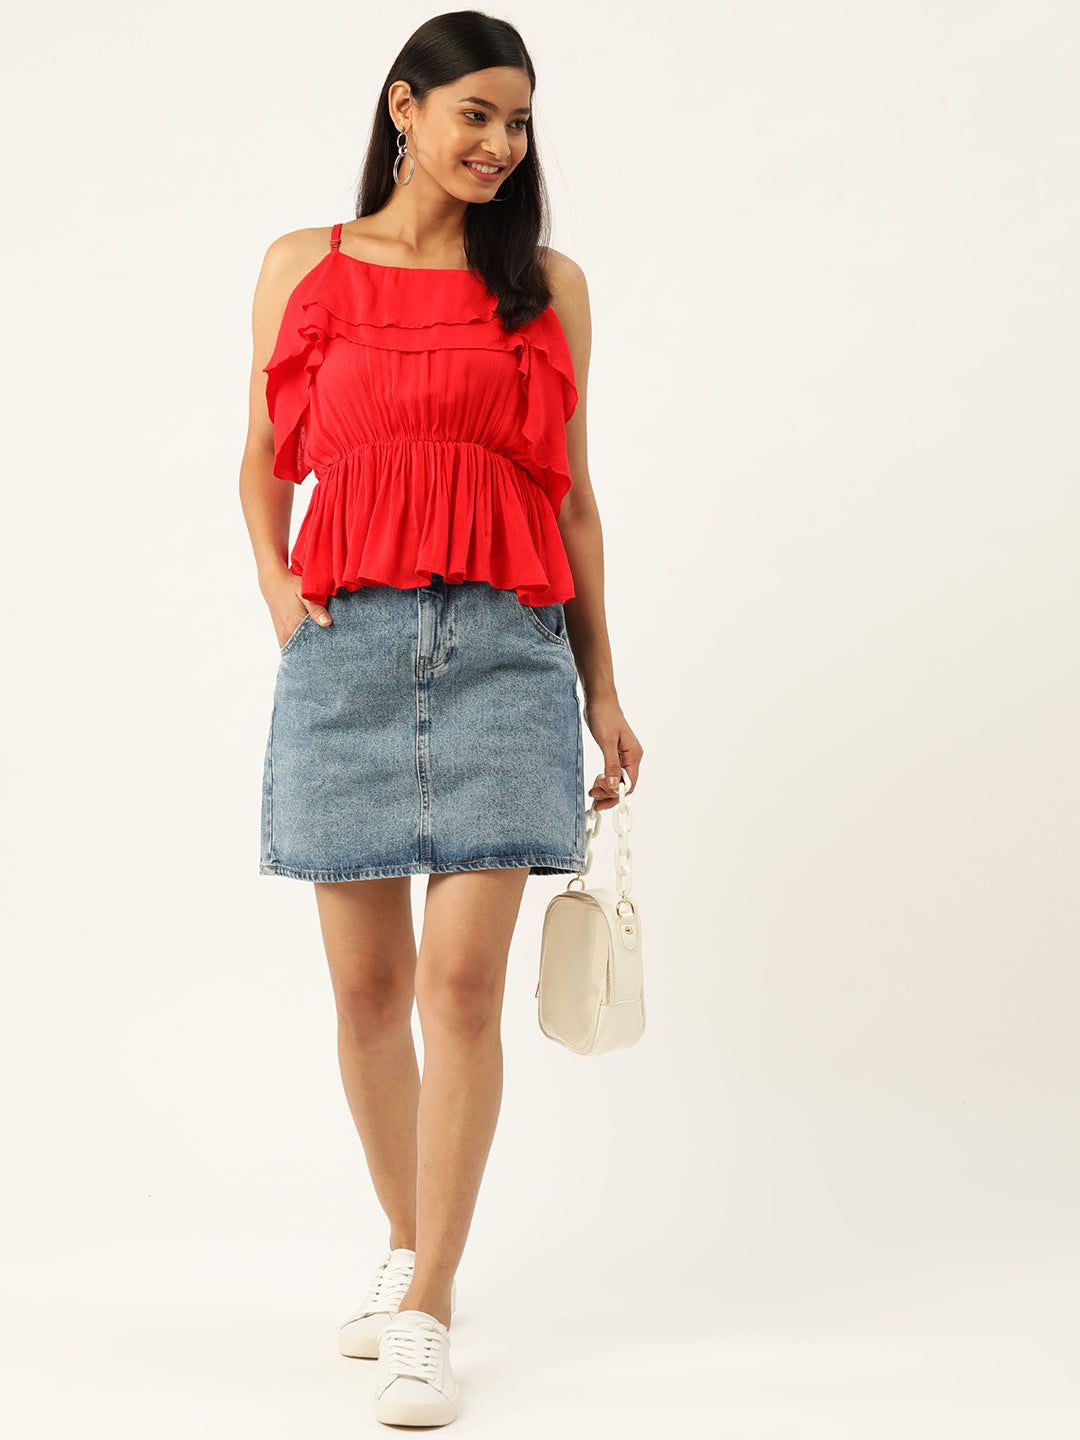 Red Peplum Party Top